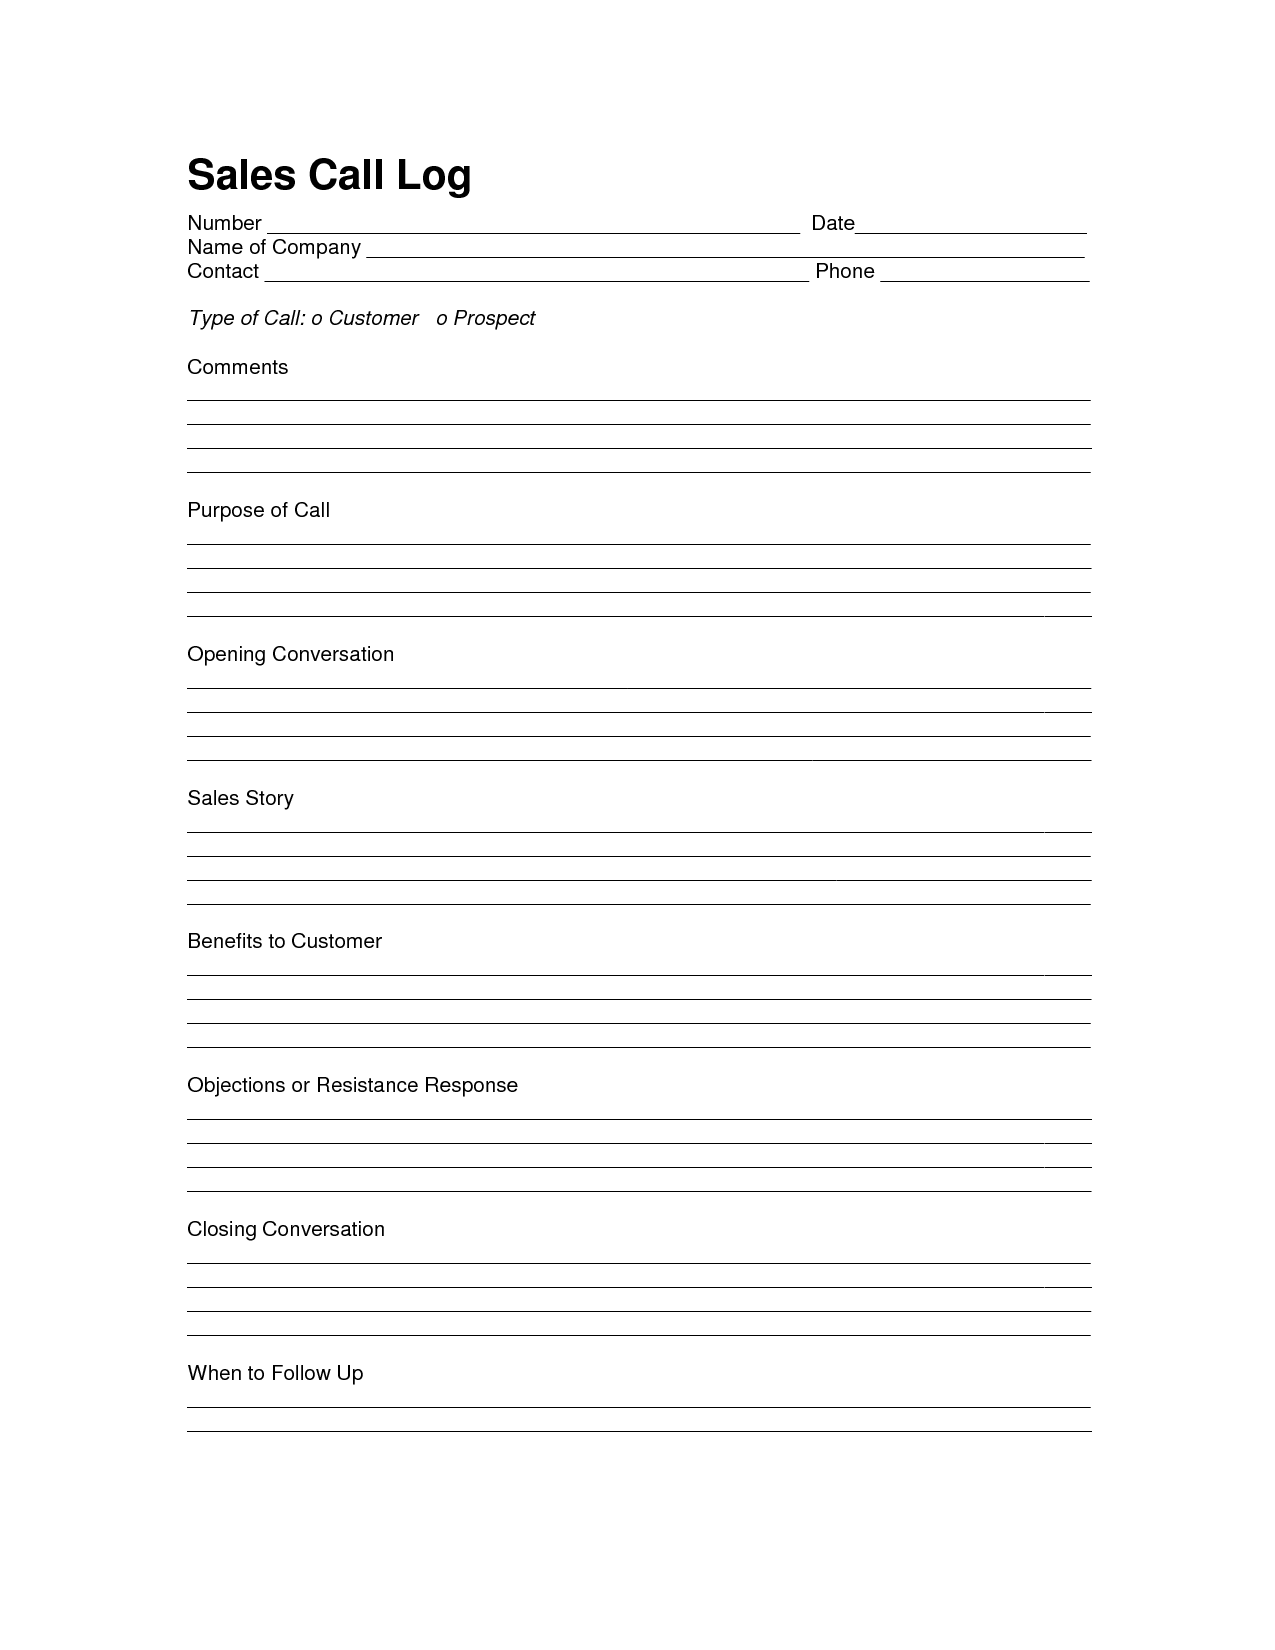 Sales Log Sheet Template | Sales Call Log Template